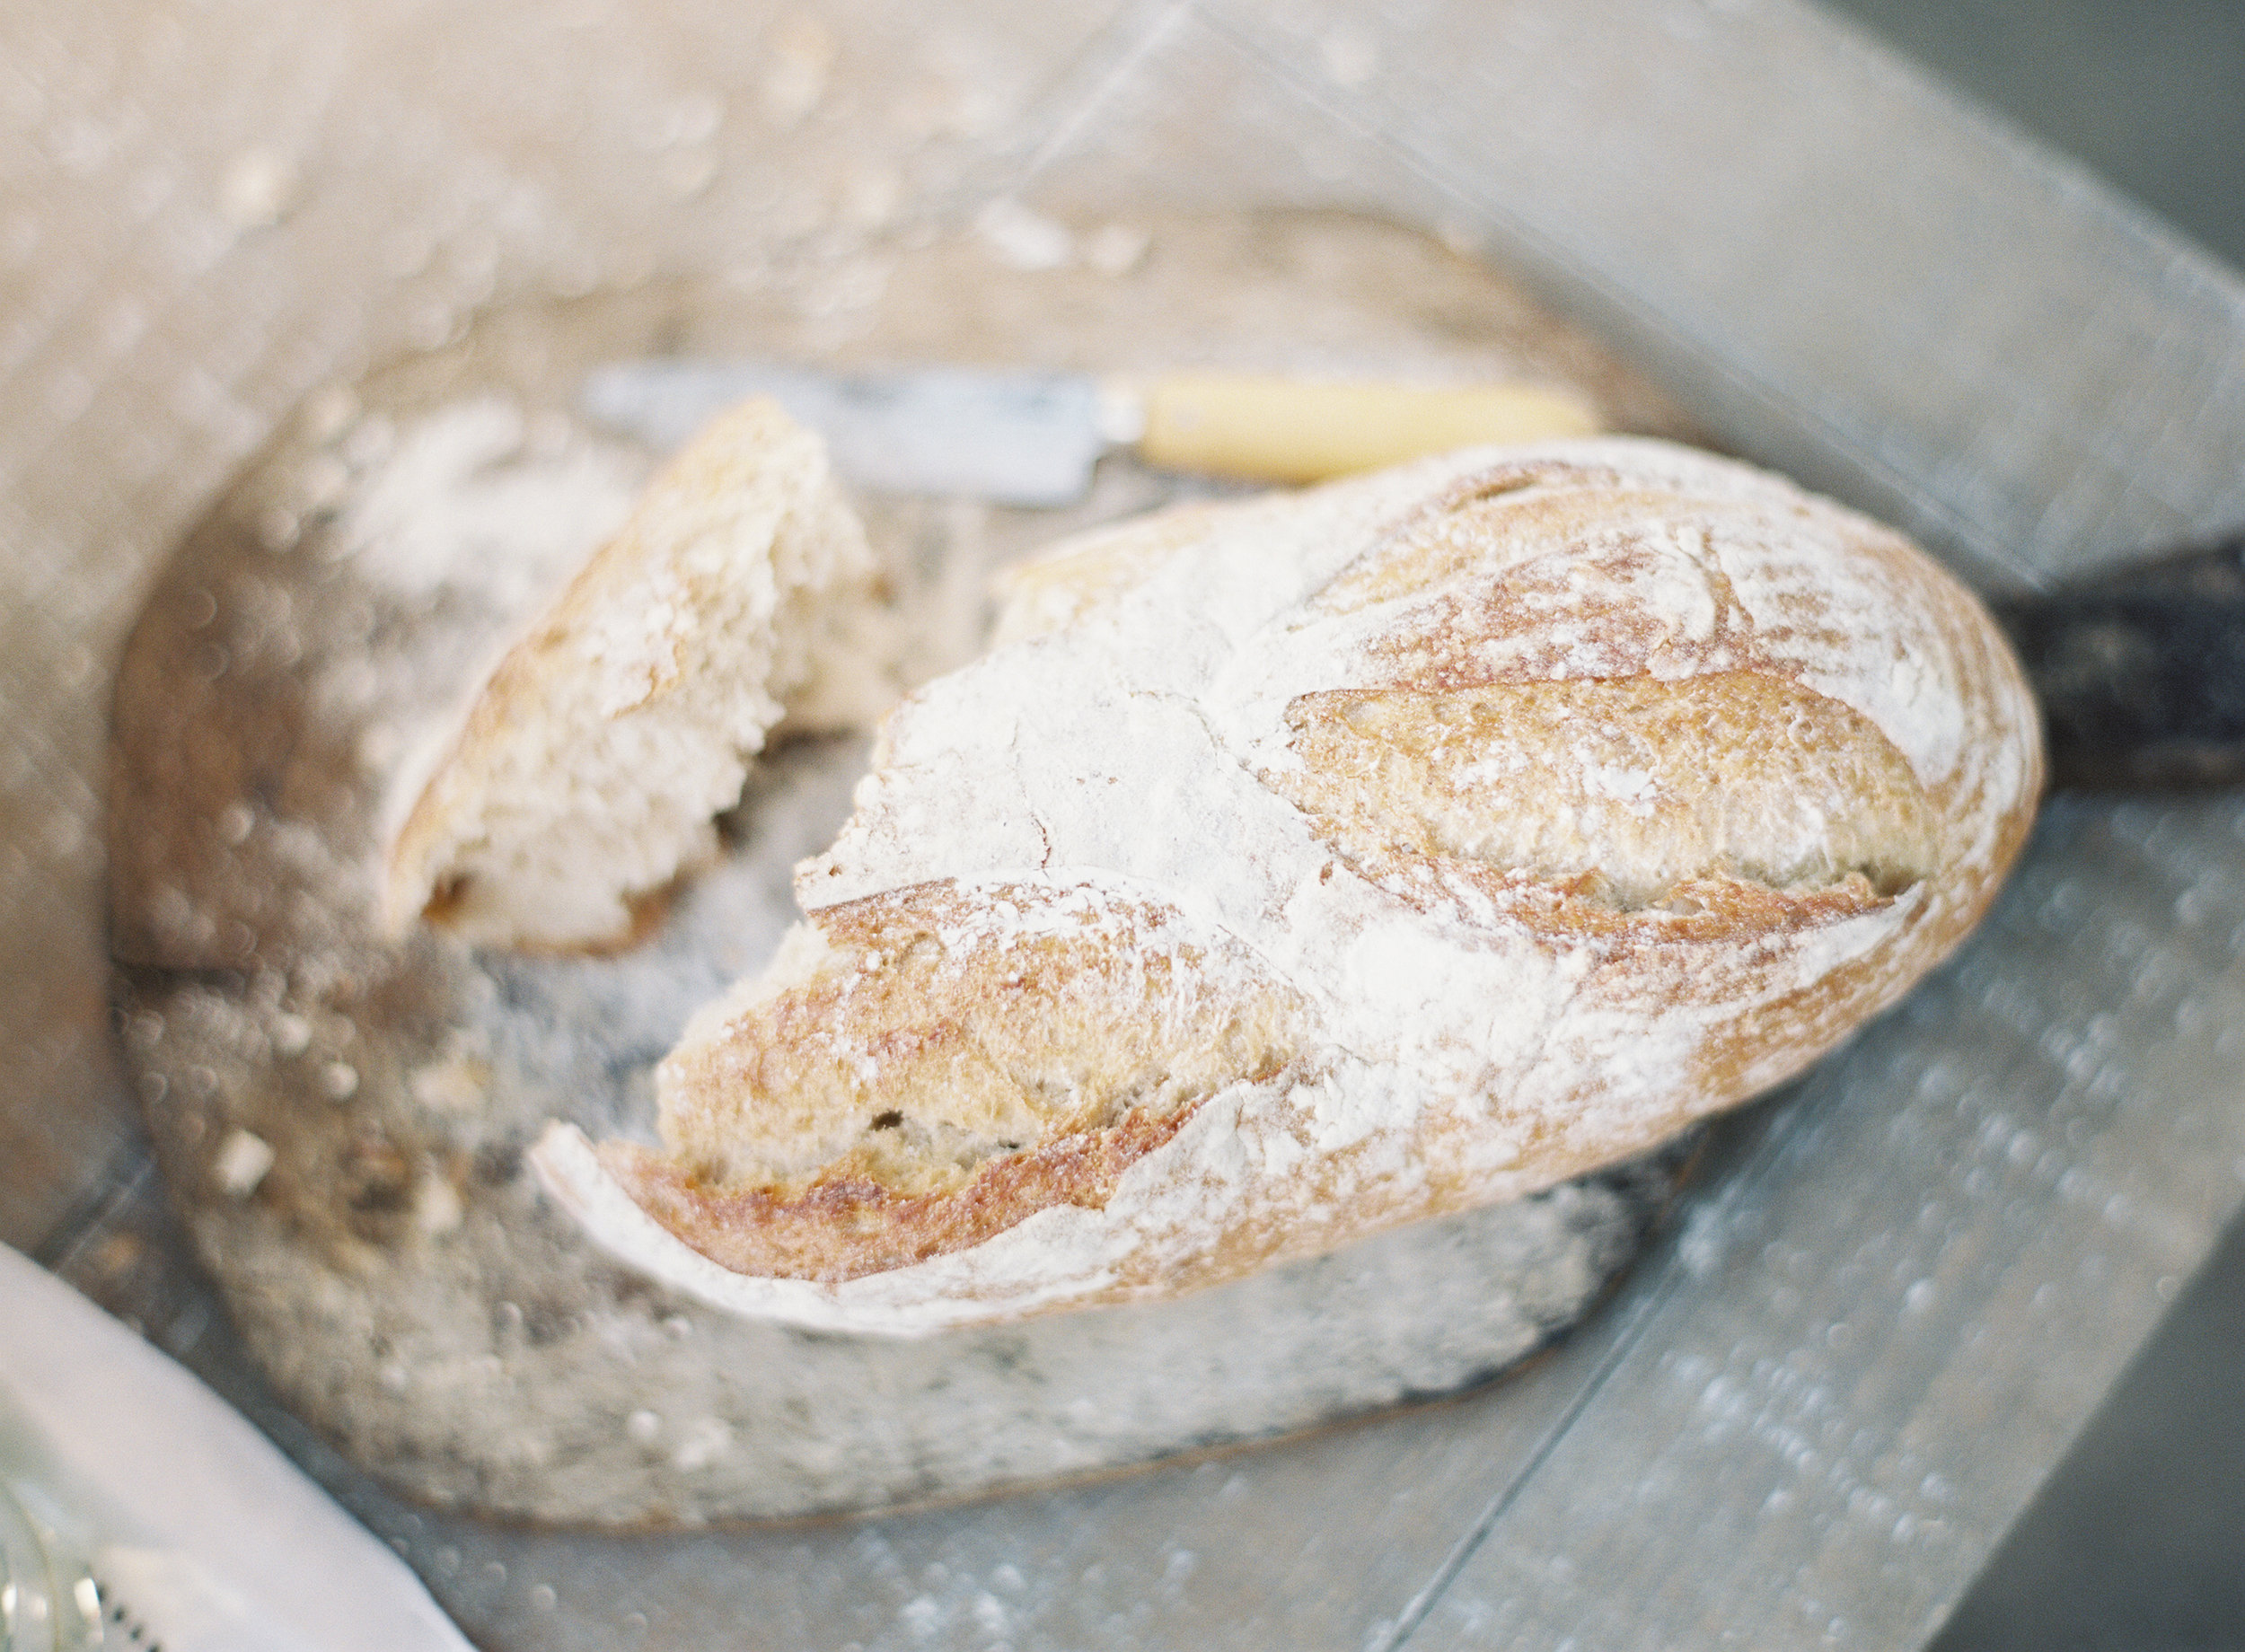 1. - Visit Bree'osh Bakery (1150 Coast Village Road) for breakfast. The name is punny and very french and the sour dough toast is basically all you need to eat for the rest of your life. Bree'osh is located on the main drag on Coast Village Road, so give yourself time to wander around and check out the boutiques.